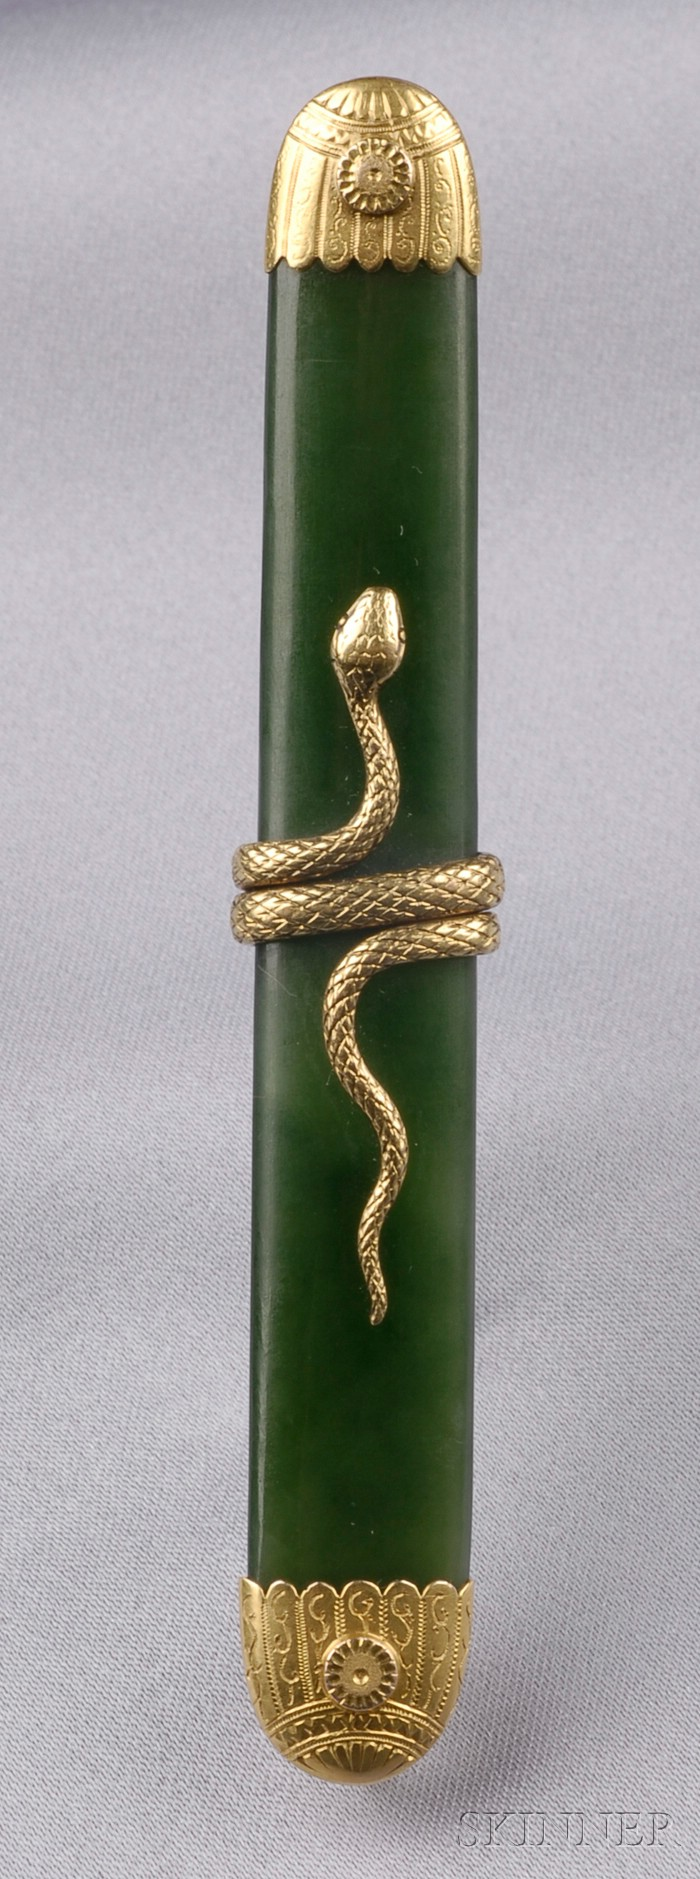 Antique 14kt Gold and Nephrite Snake Brooch